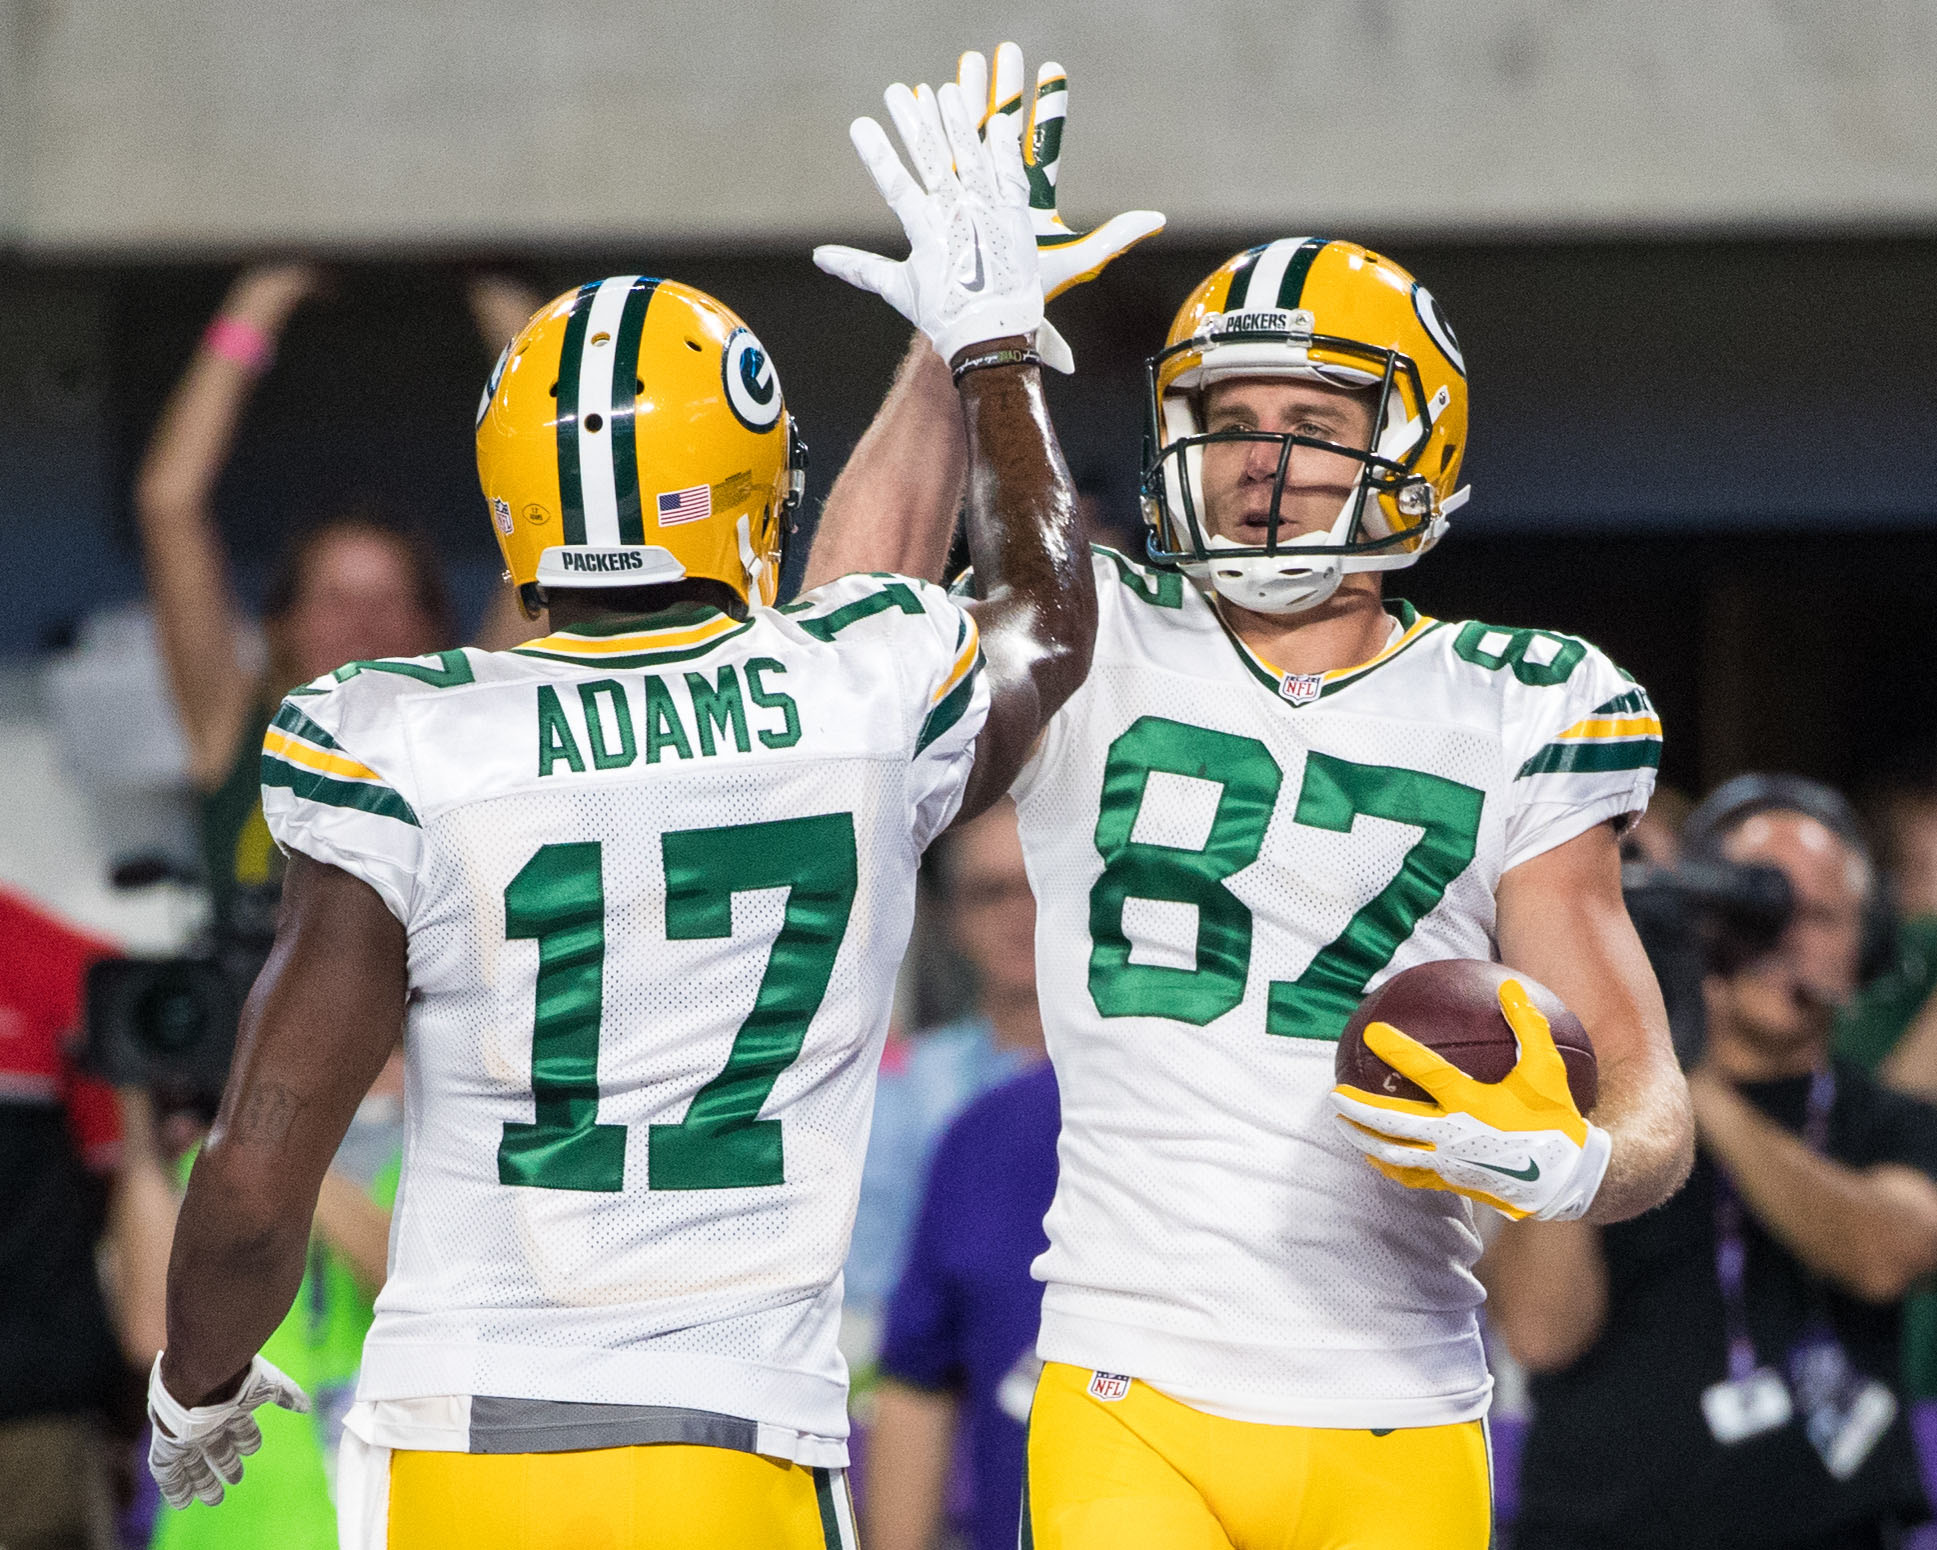 Ranking the Packers Greatest WRs Ever by Decade